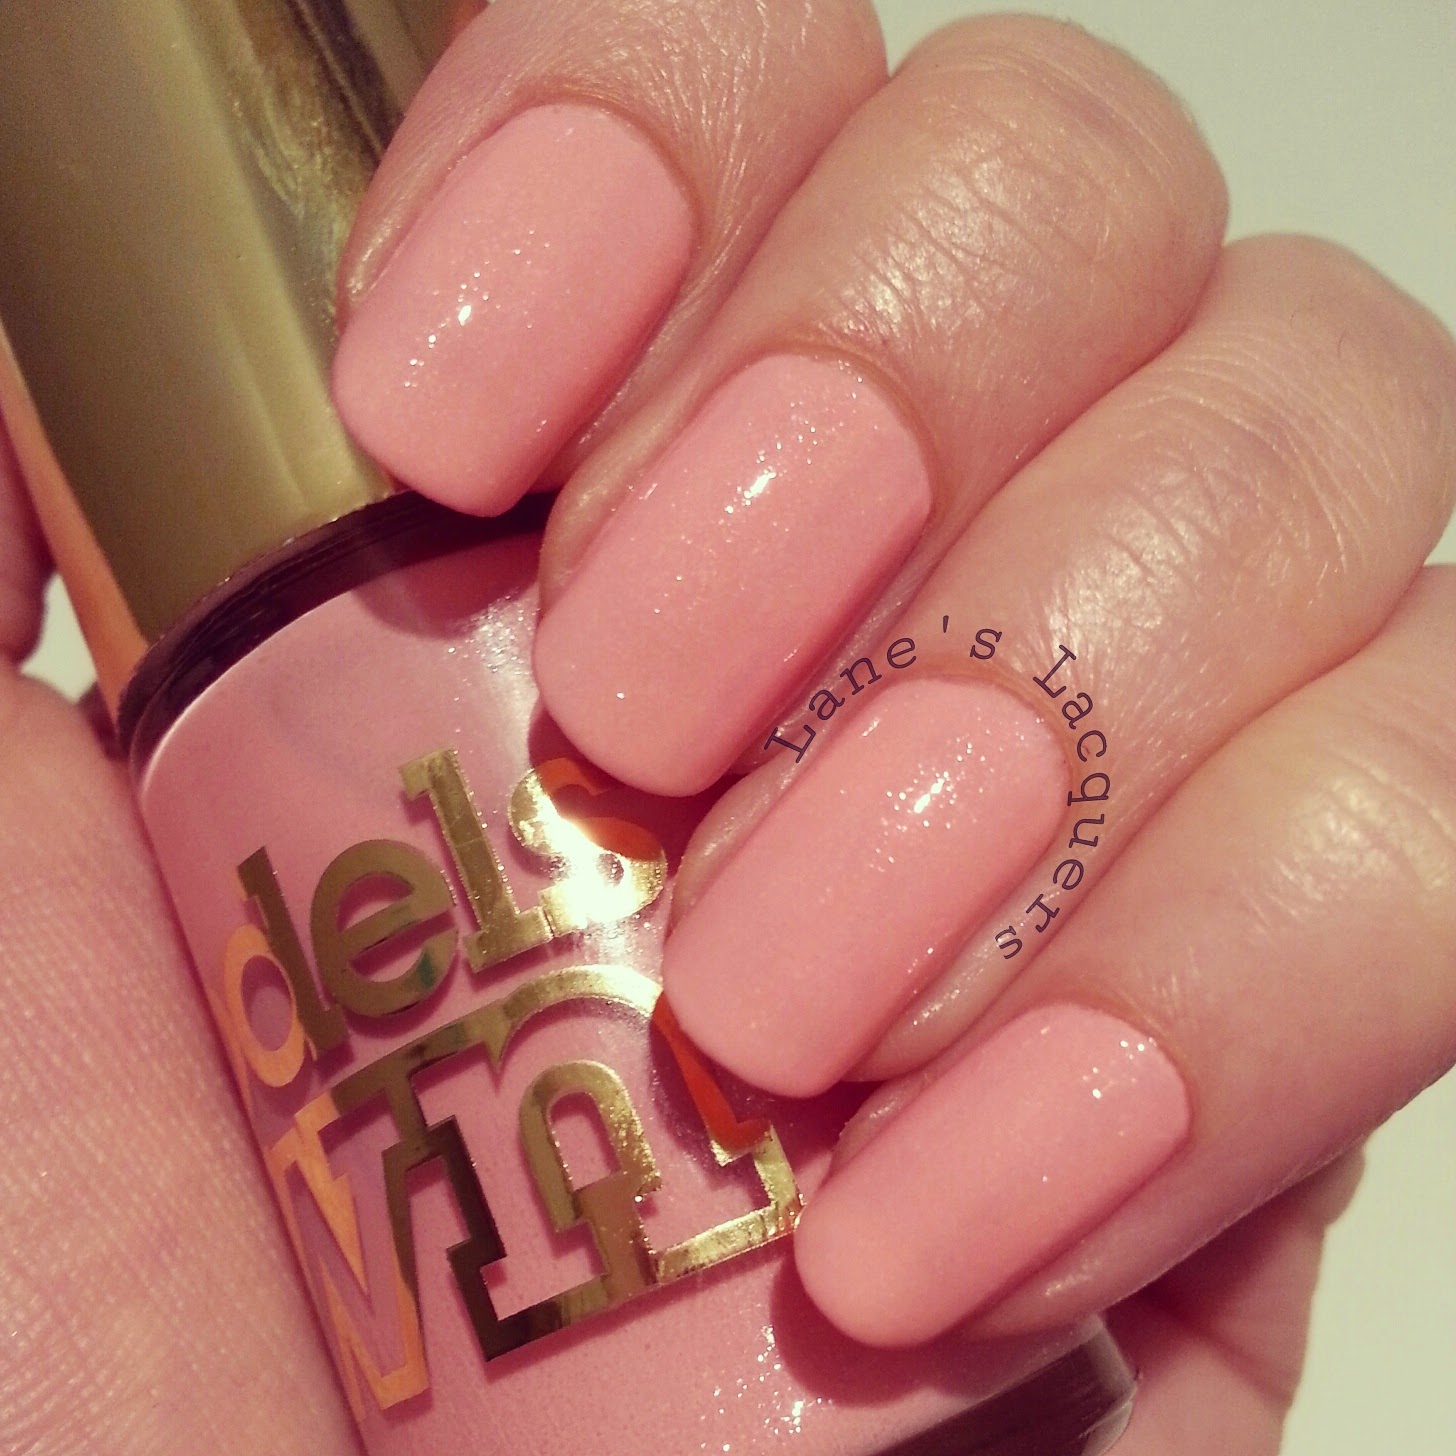 new-models-own-luxe-collection-princess-pink-swatch-nails